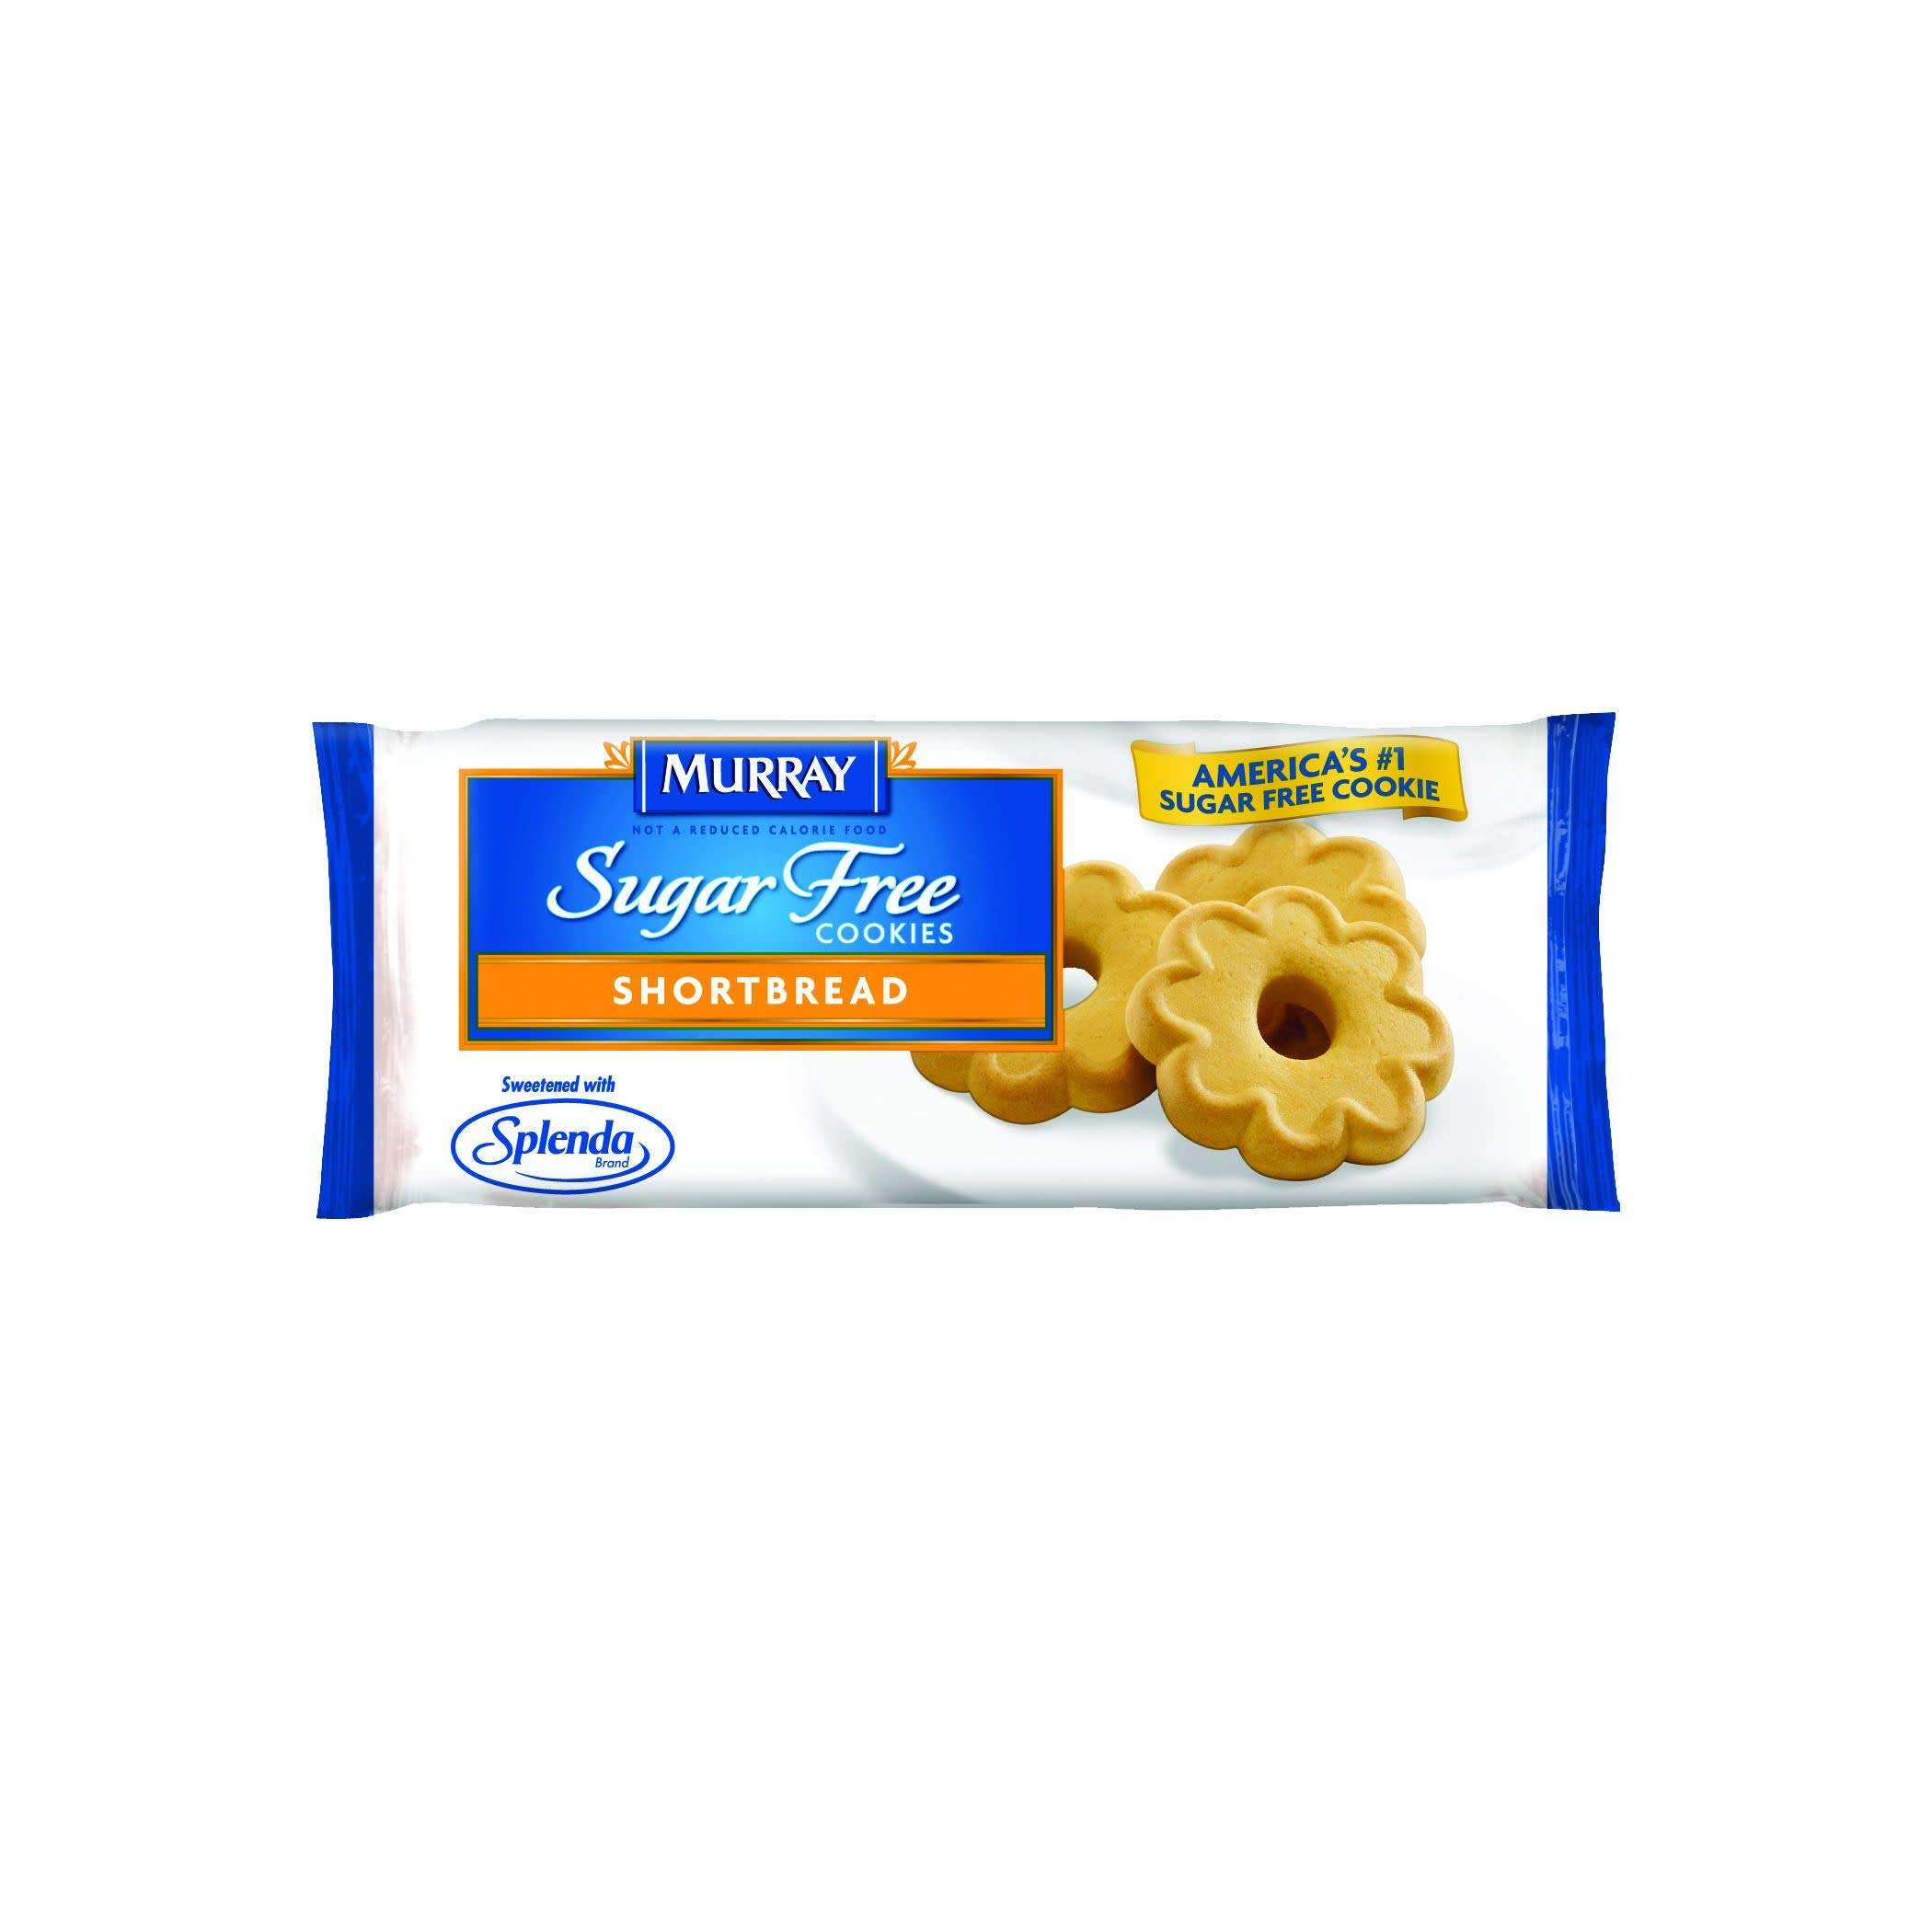 Murray Sugar Free Shortbread (8-Count) Cookies, 1.06-Ounce Single Serve Packs (Pack of 120) (Packaging May Vary)